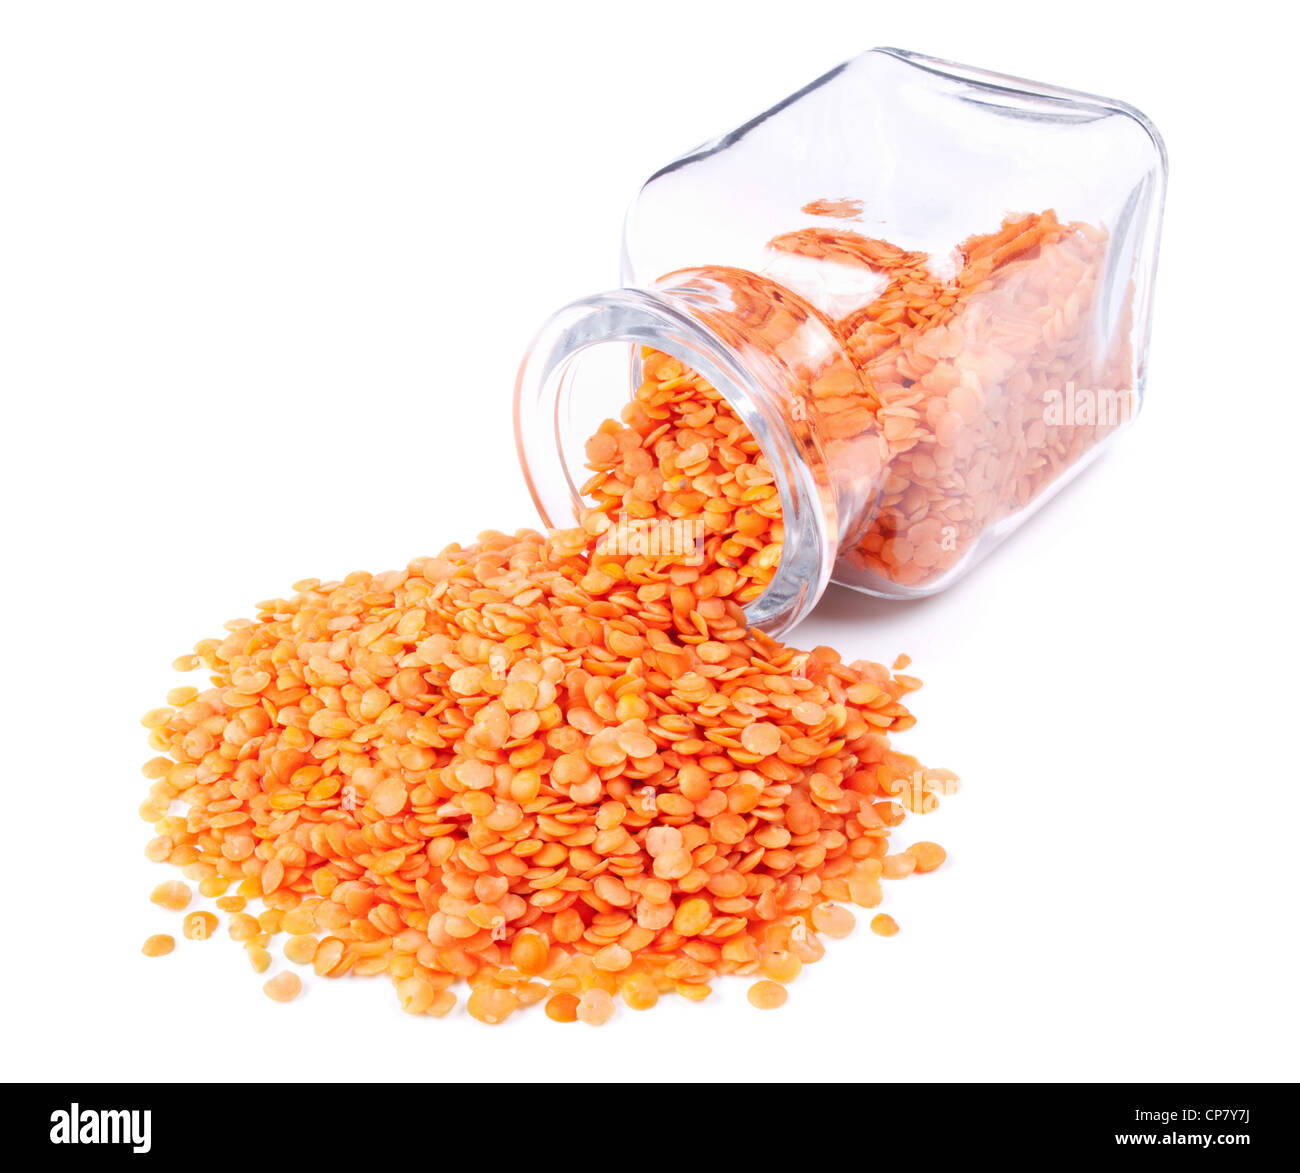 red split lentils scattered on a white background from glass jar - Stock Image